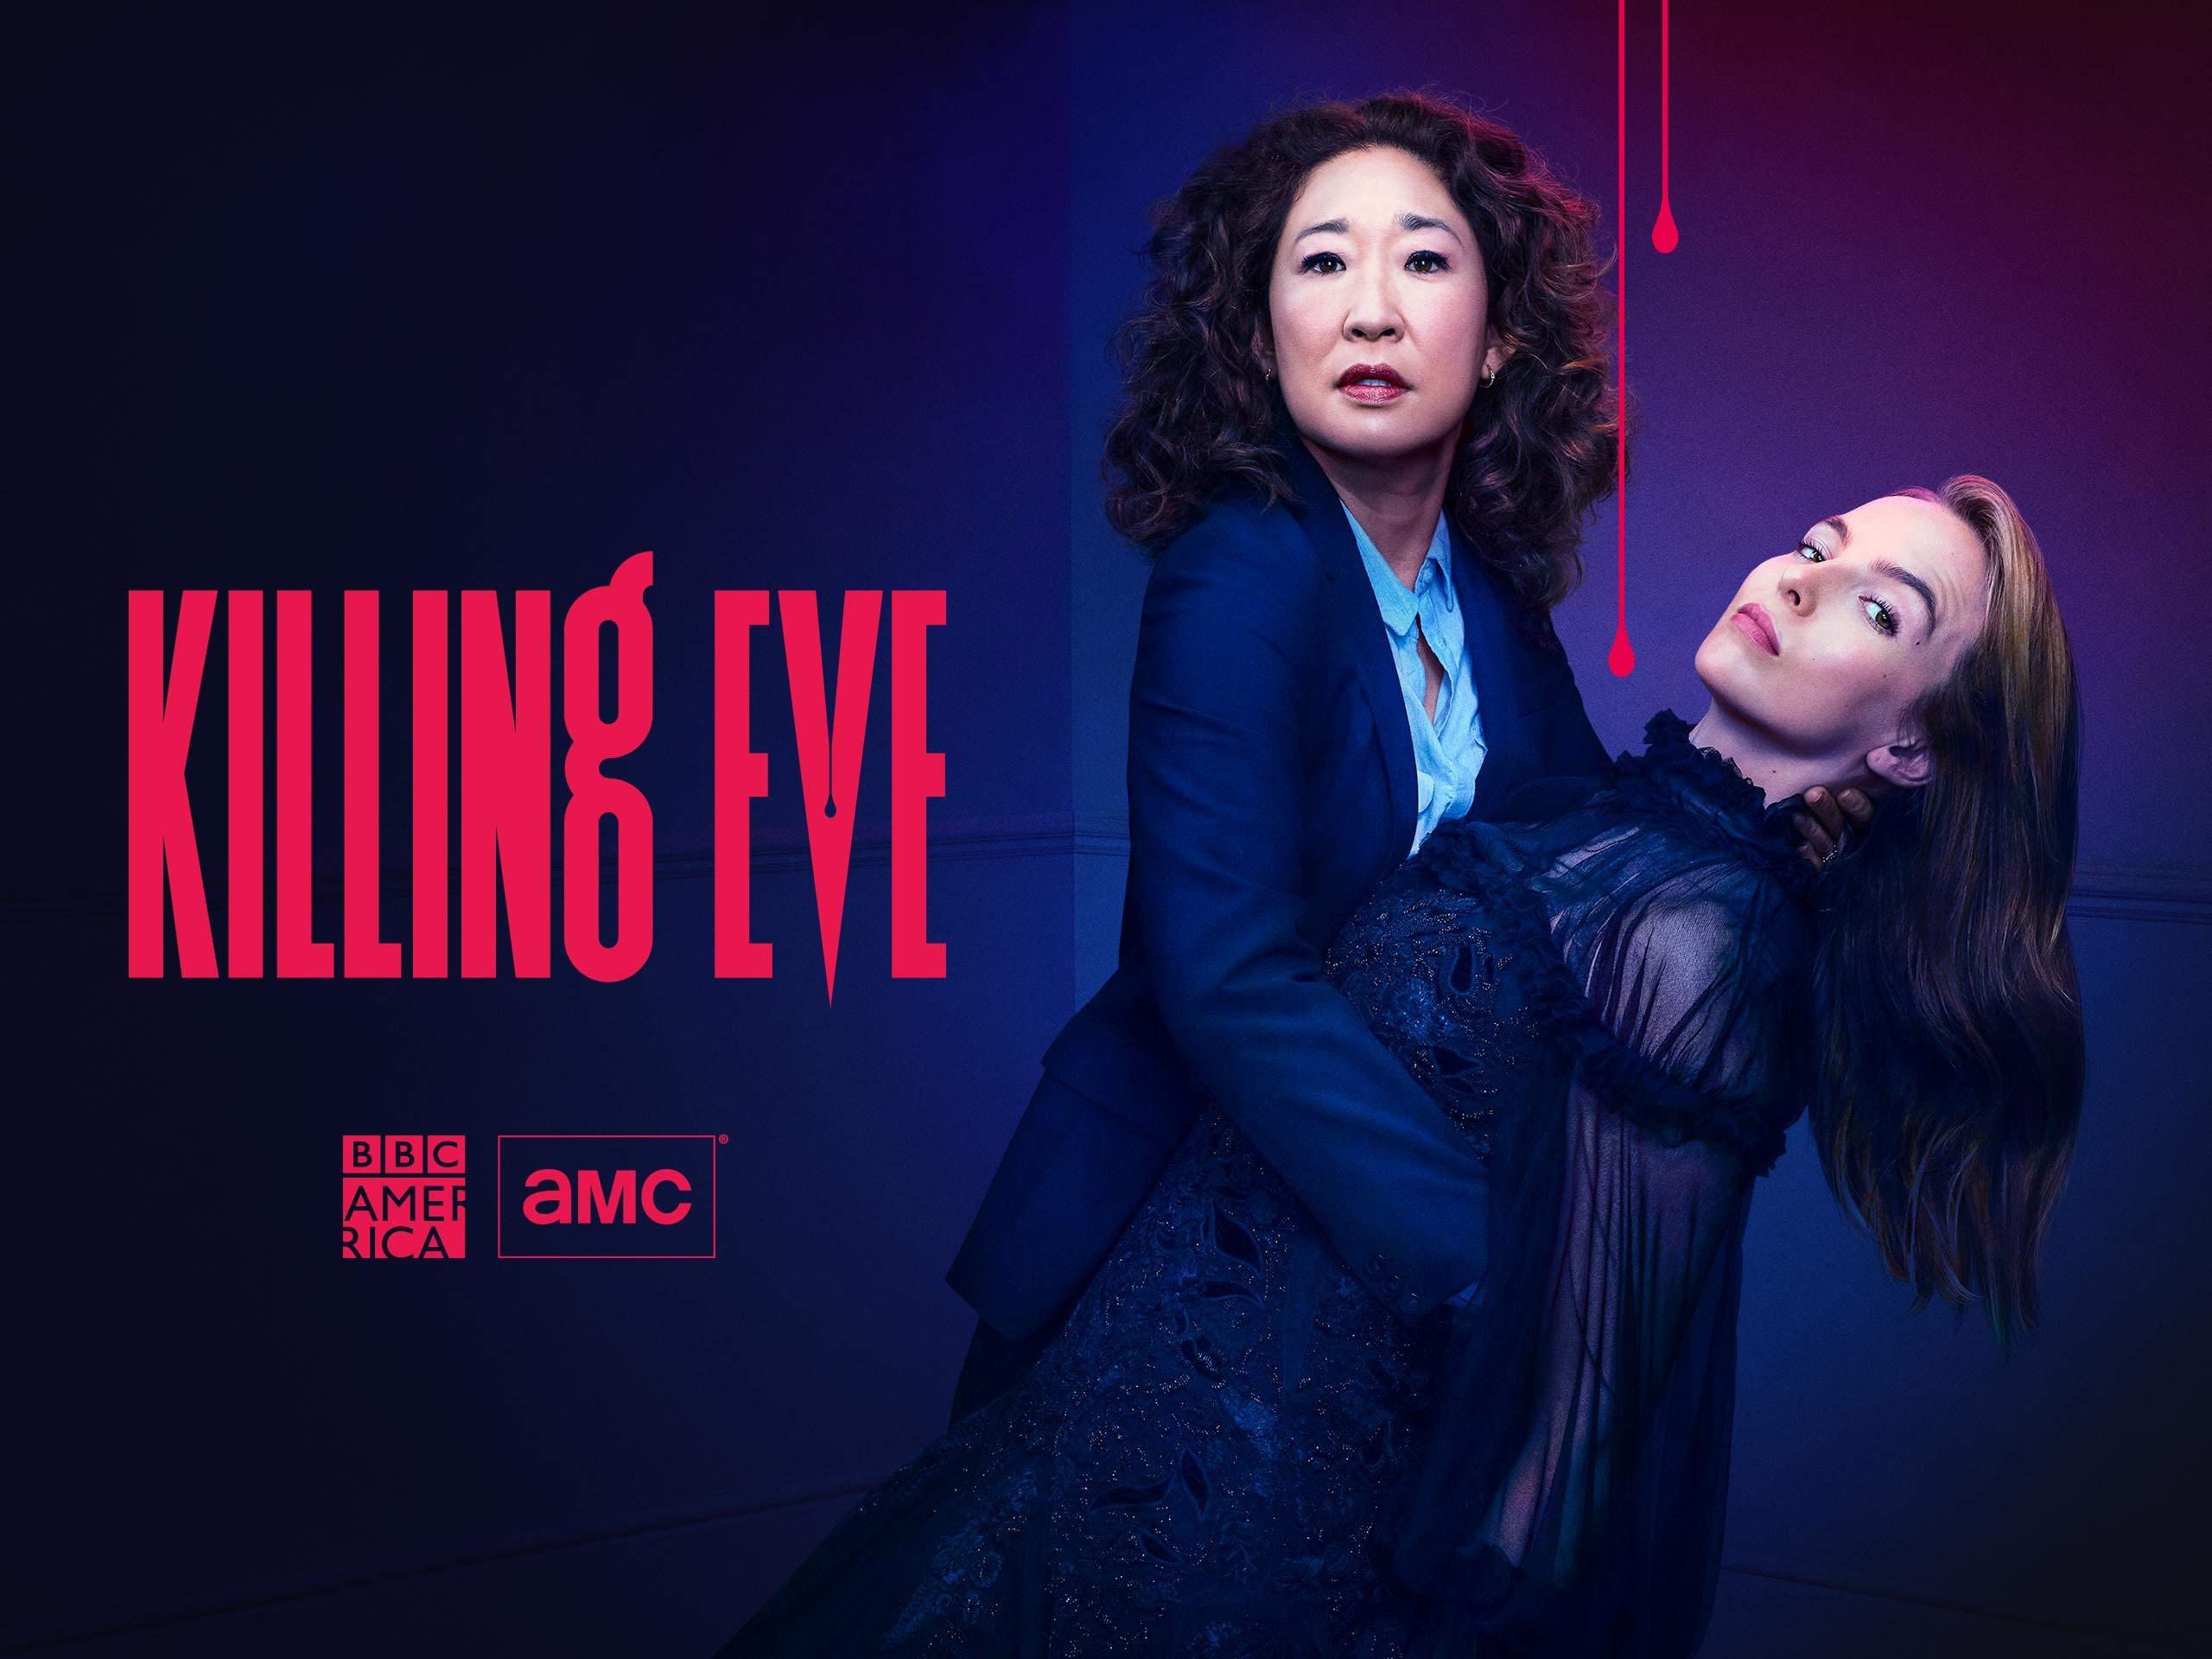 Killing Eve Season 3 & Season 4: update, Cast, Plot and Everything You Need To Know